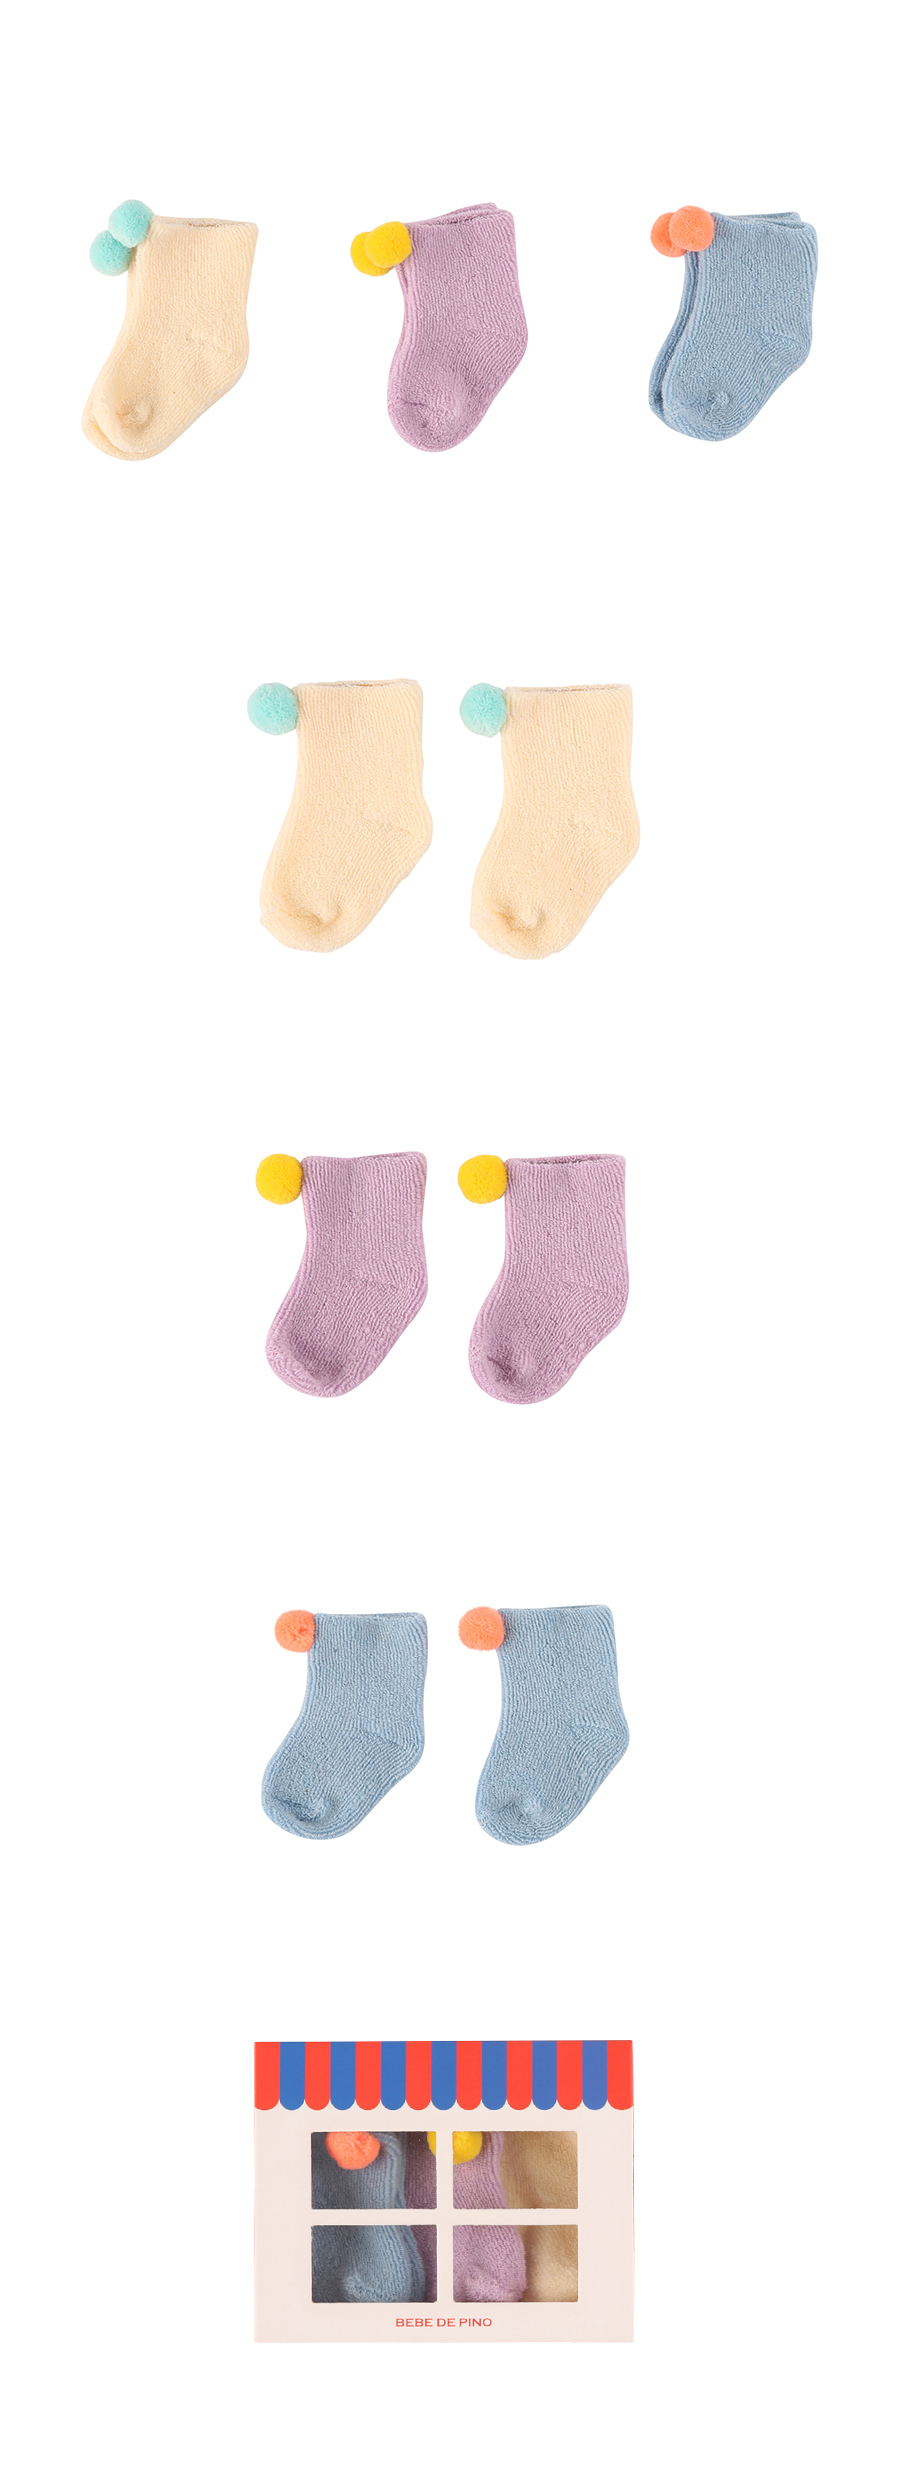 Newborn pompom socks 상세 이미지